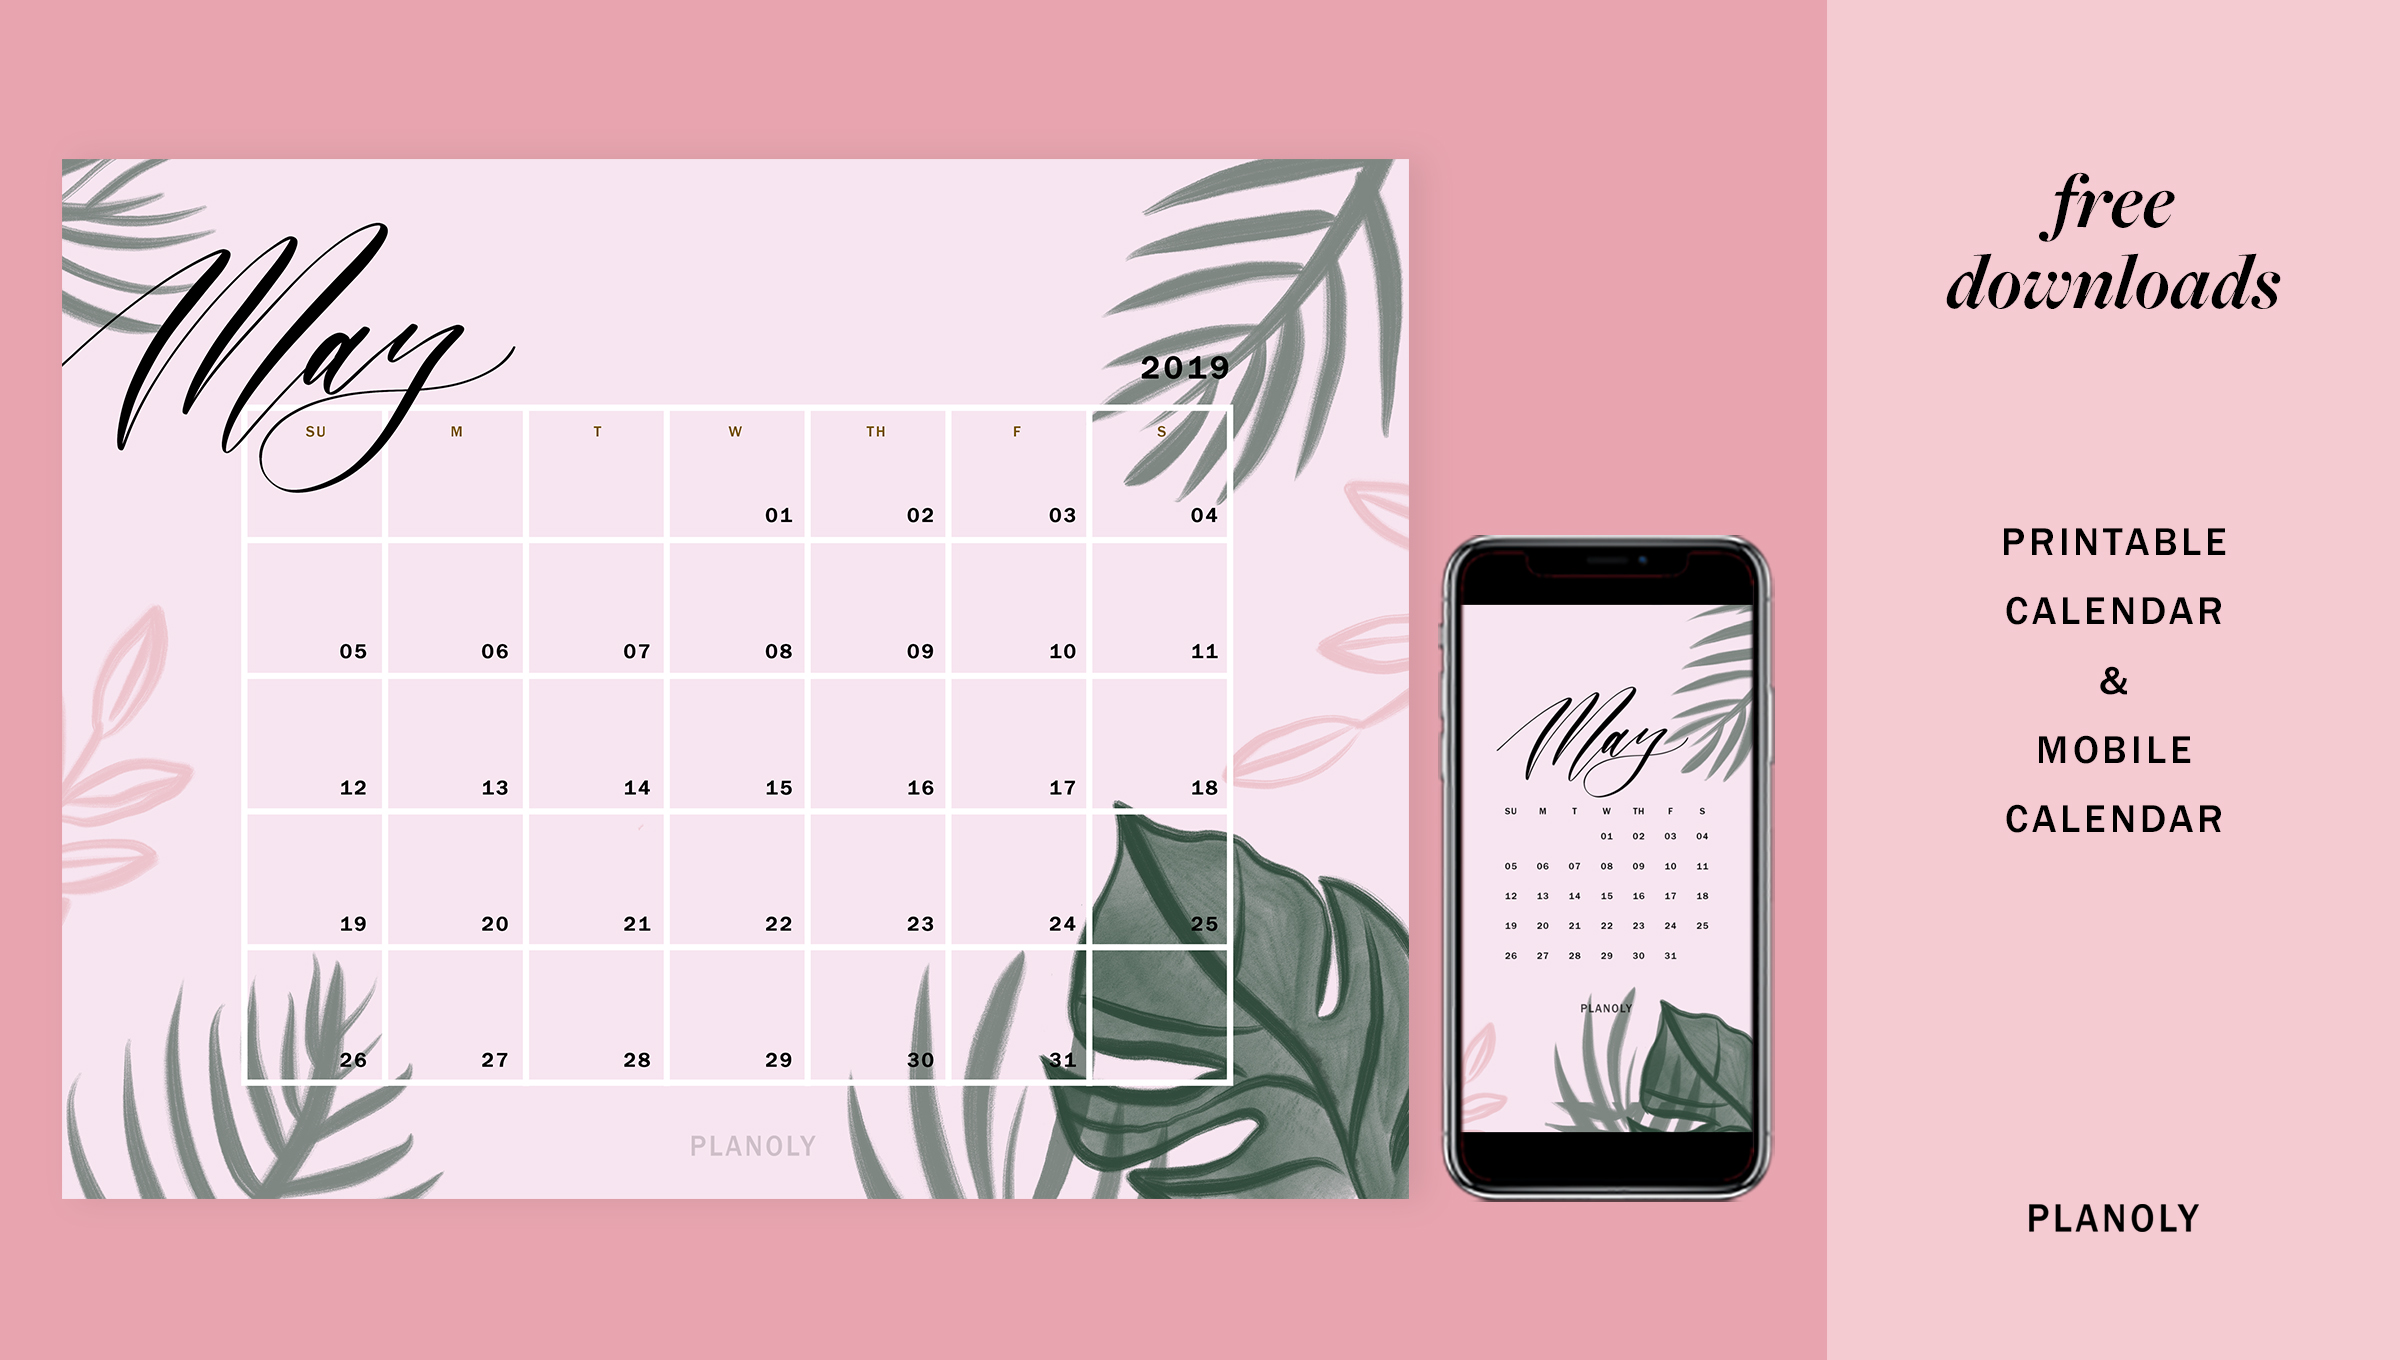 Calendrier 2019 Free.2019 Free Printable Monthly Calendar Variety Puzzles